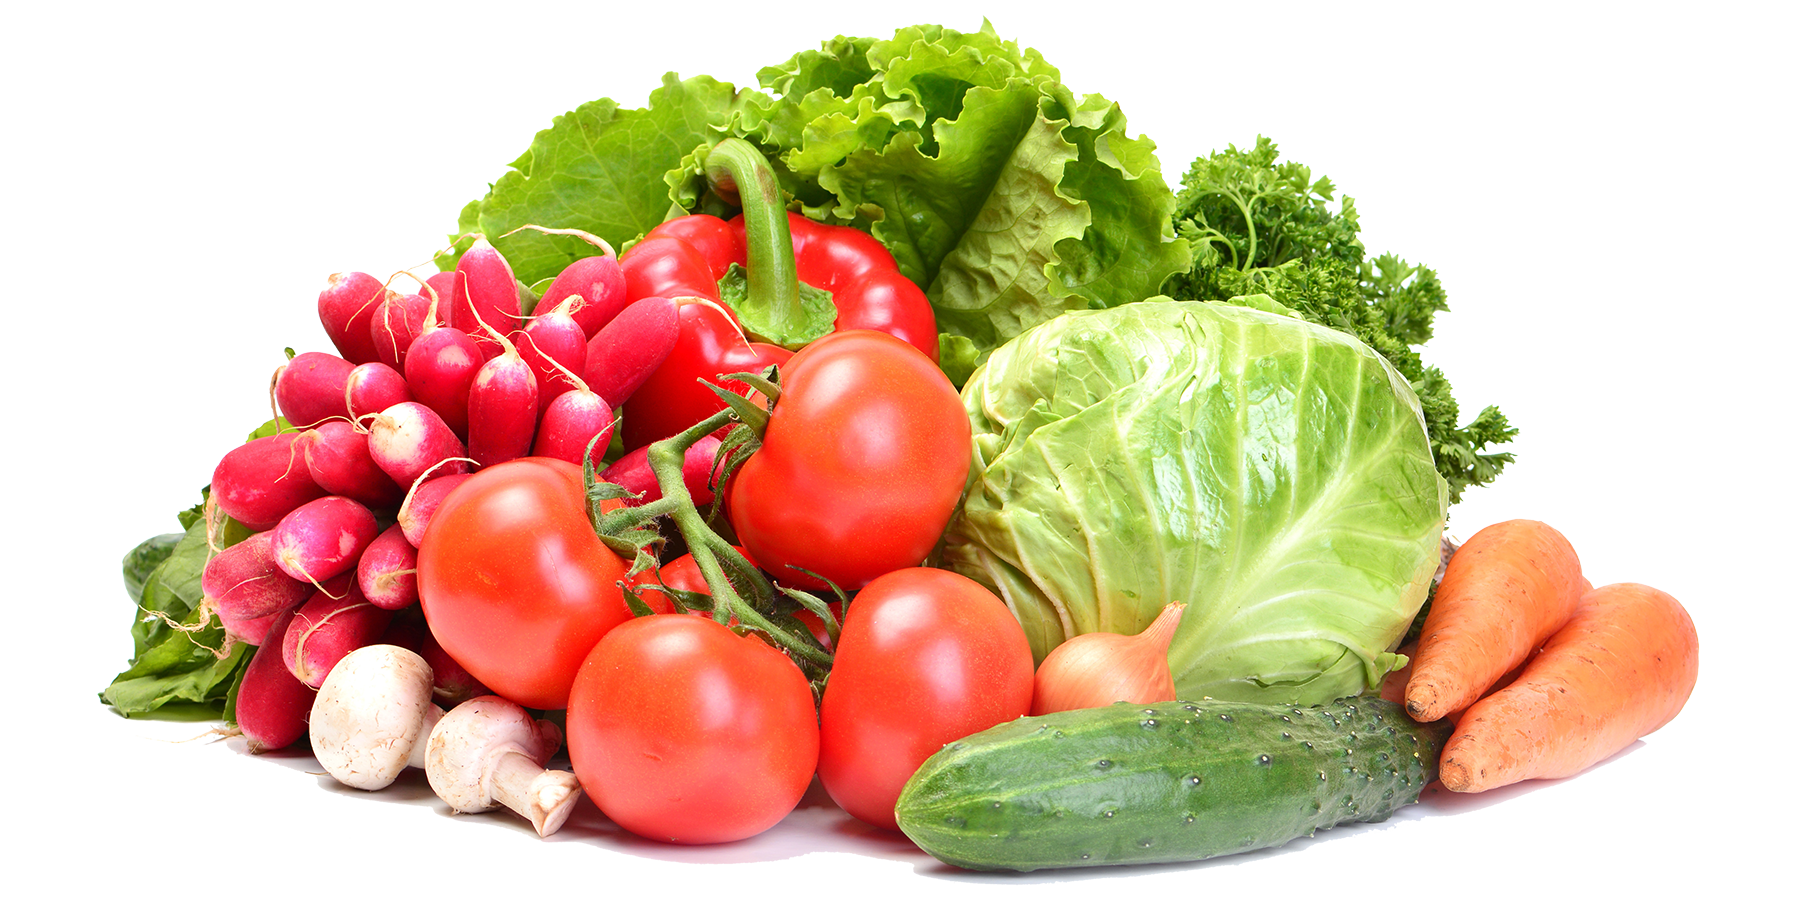 Fresh vegetables png. Wholesale produce from the